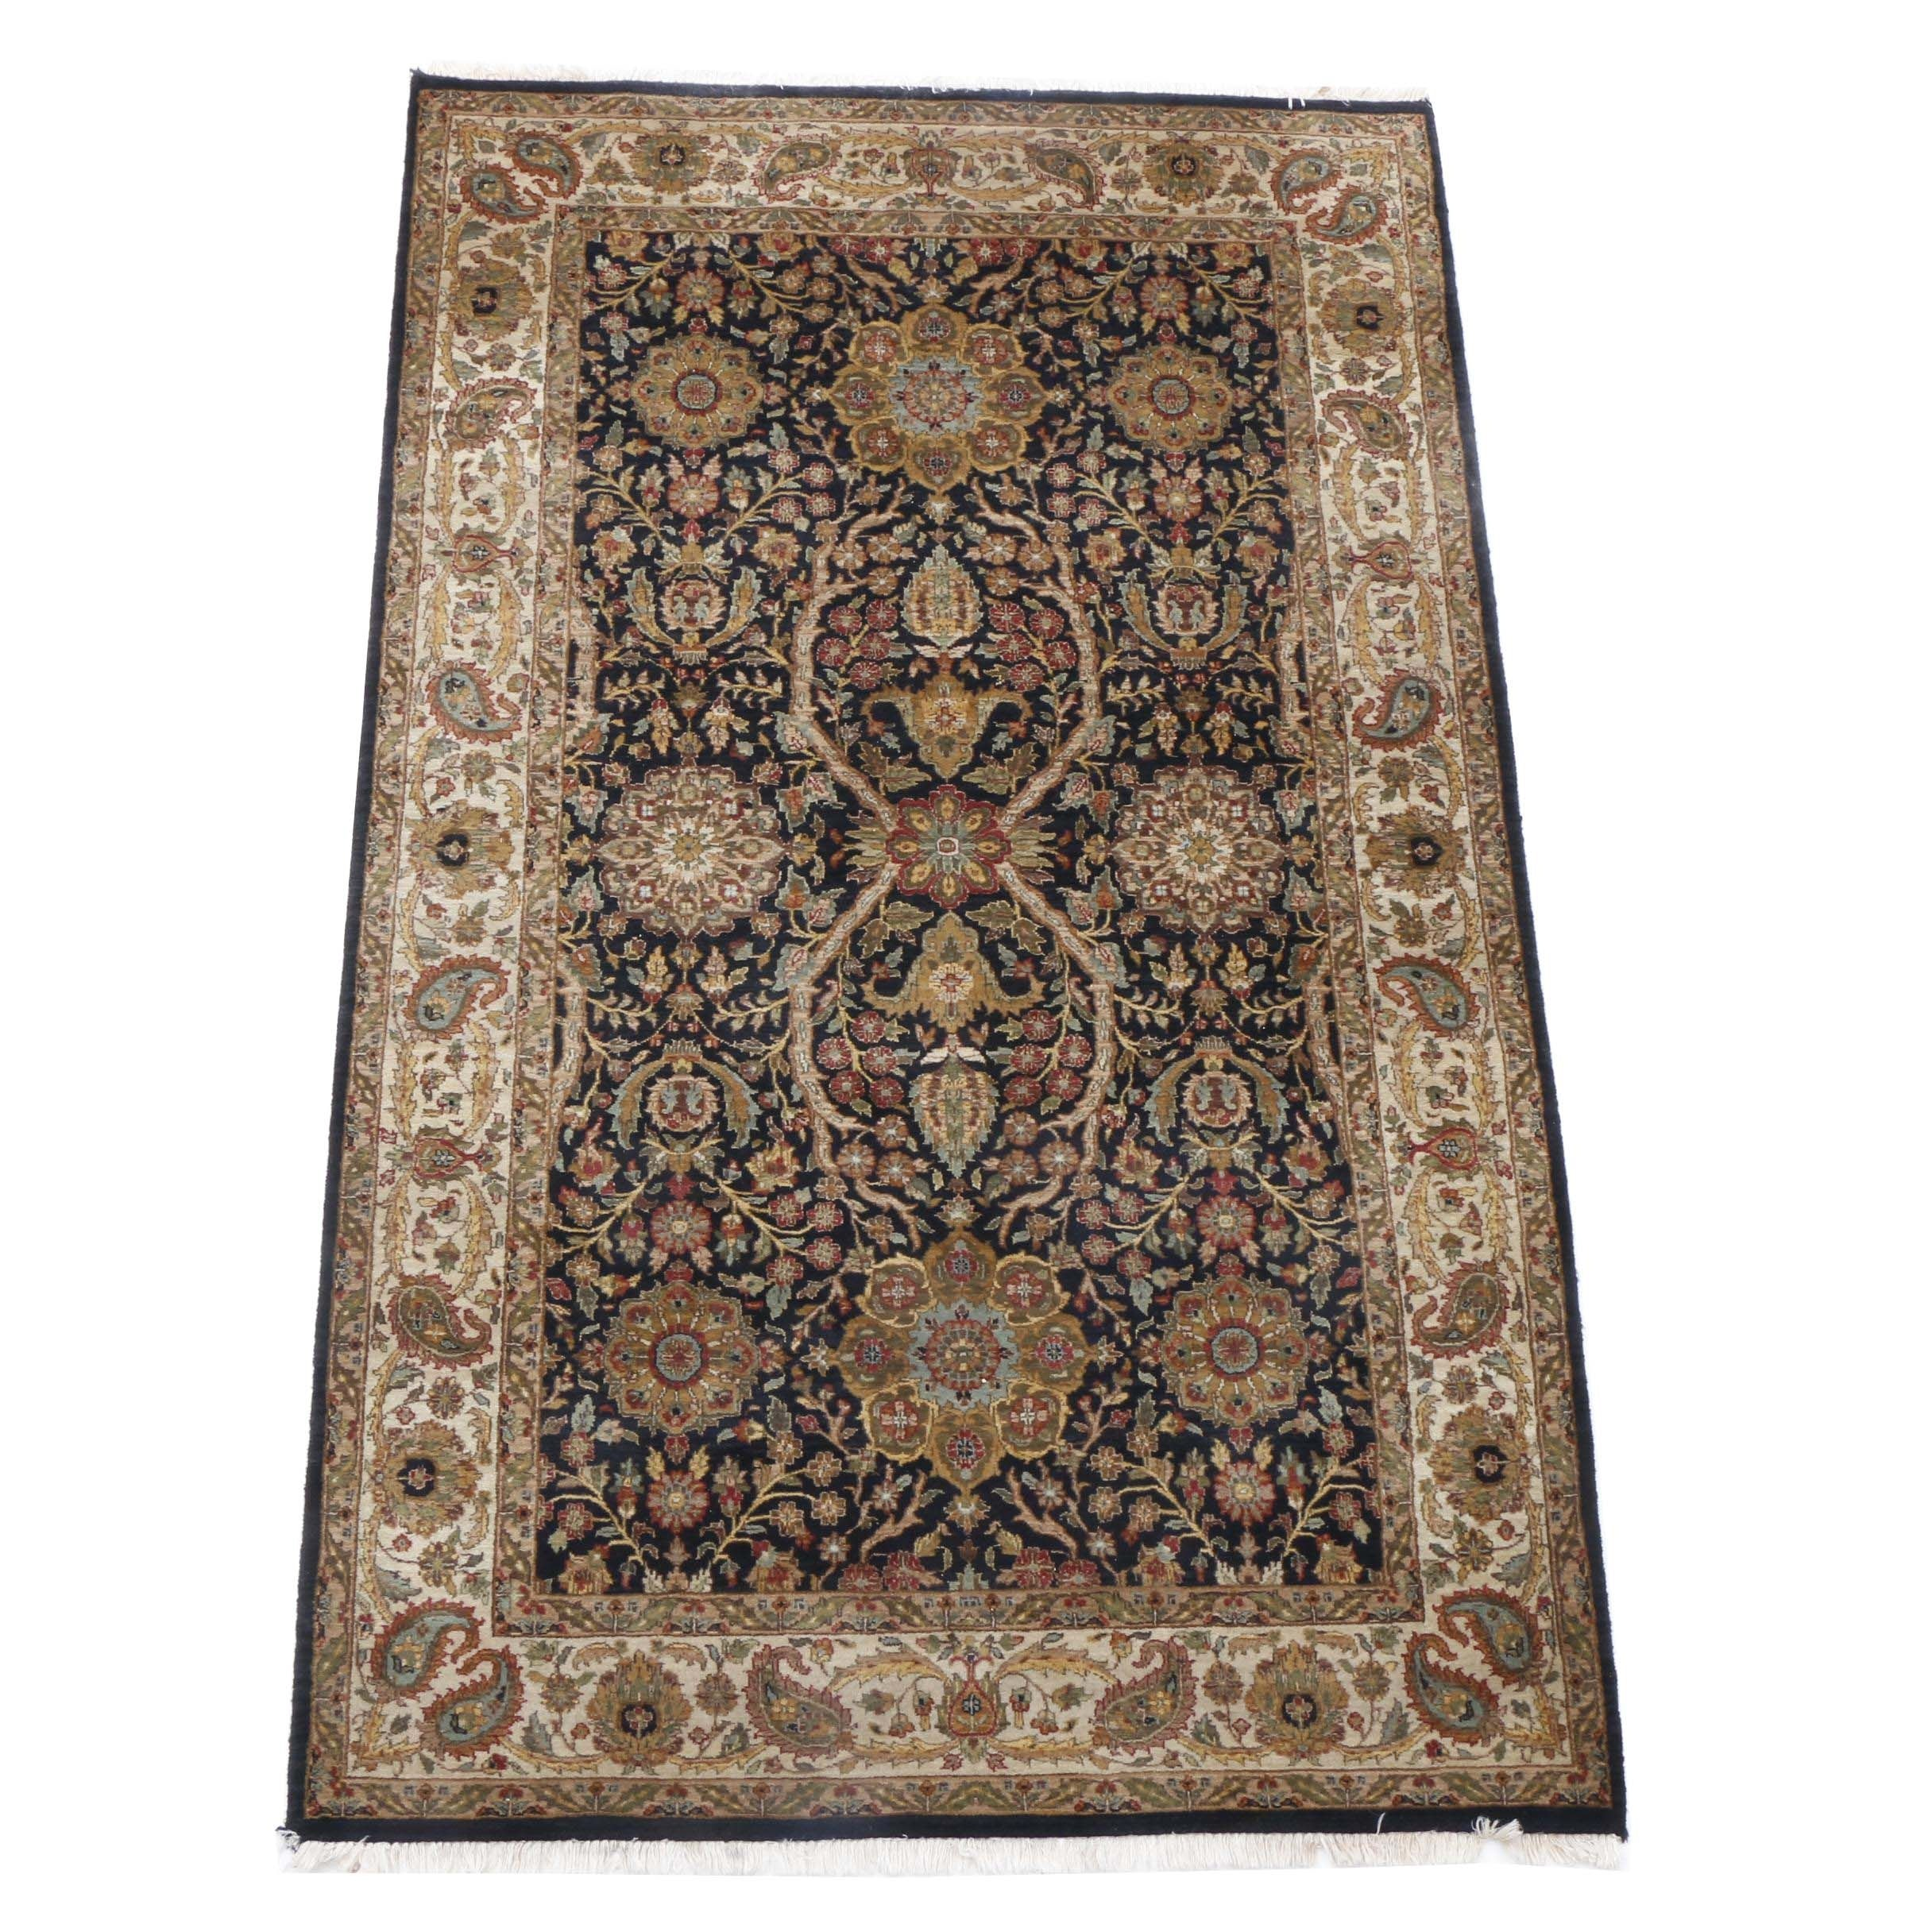 Hand-Knotted Indo-Persian Agra Style Area Rug